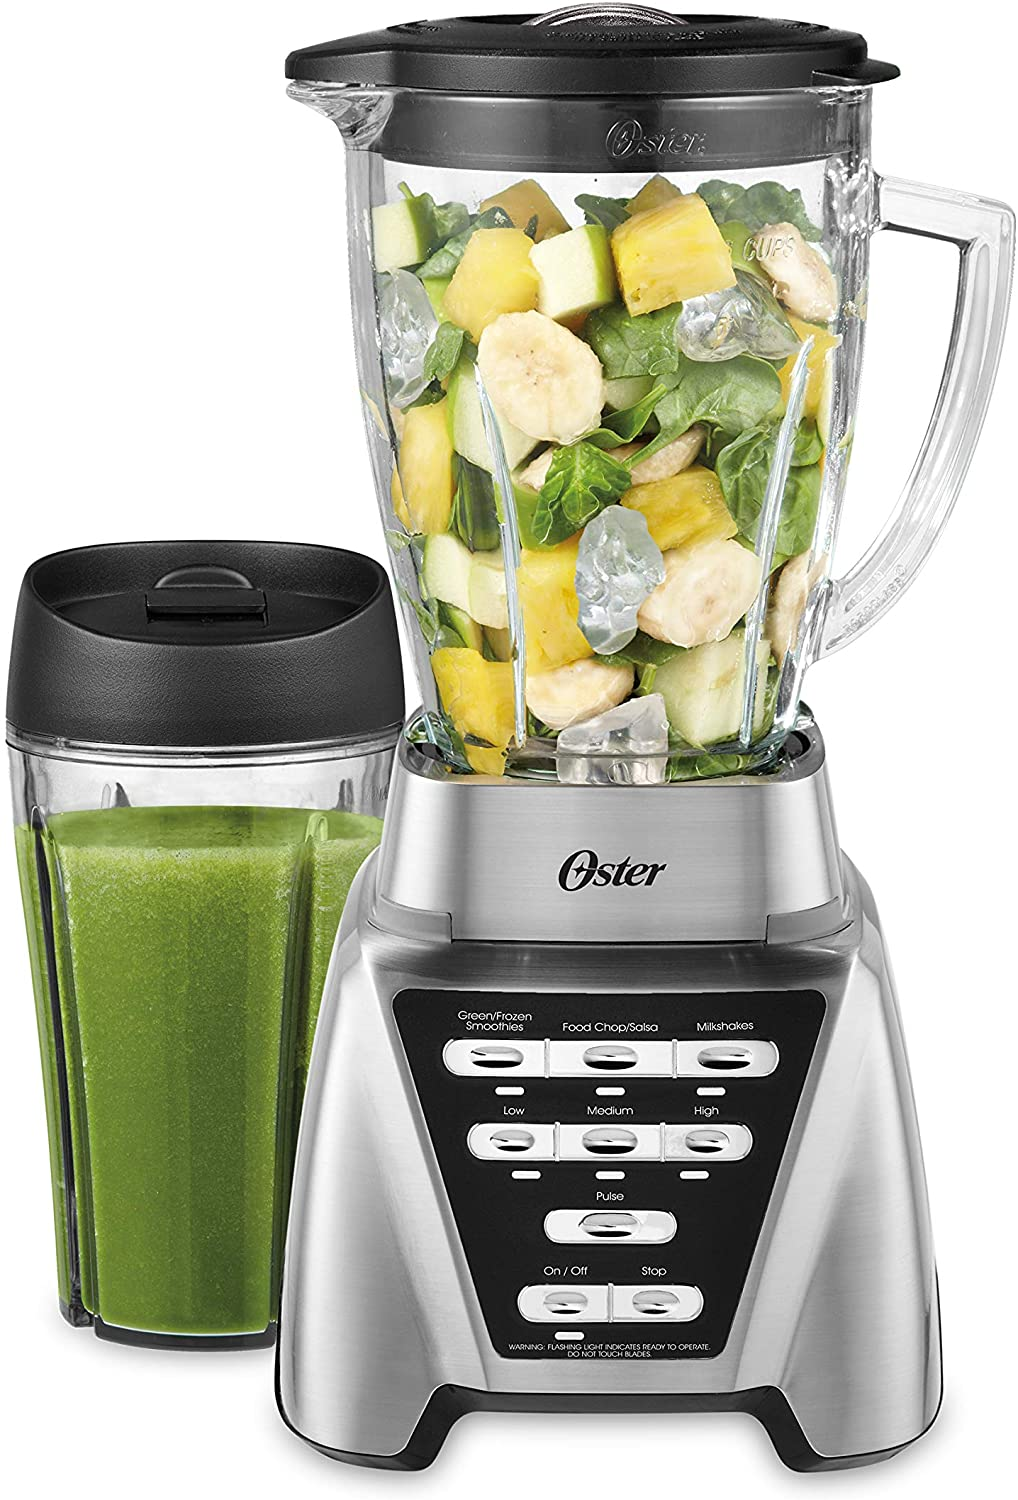 Oster Blender Pro 1200 for kale smoothies